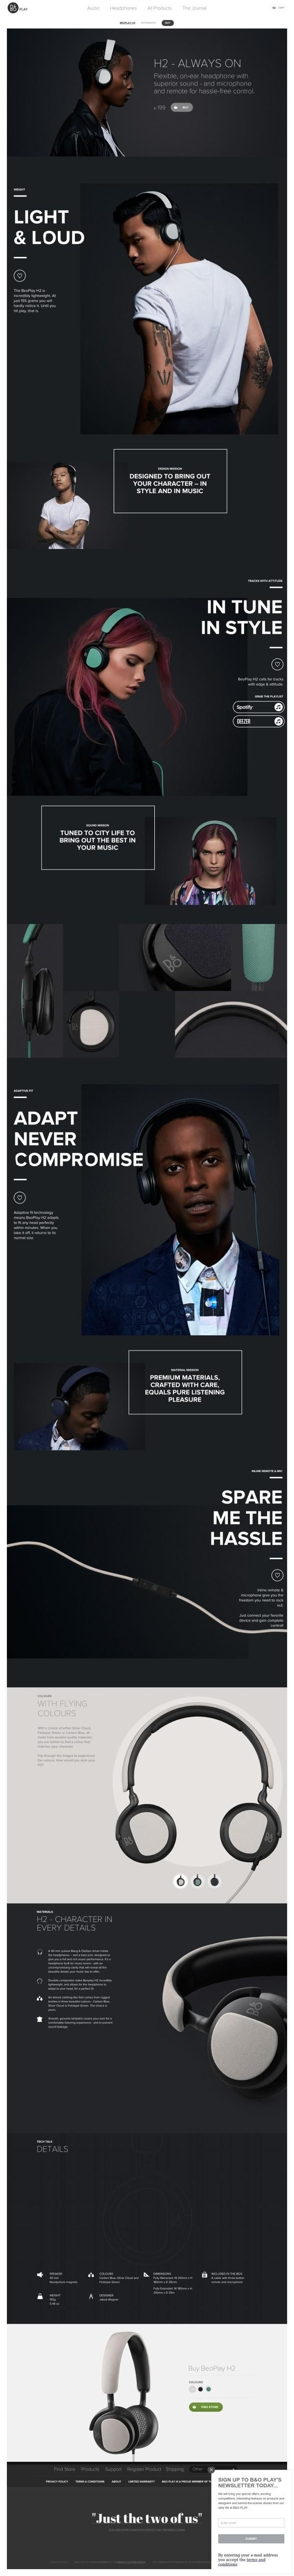 http://www.beoplay.com/products/beoplayh2#at-a-glance